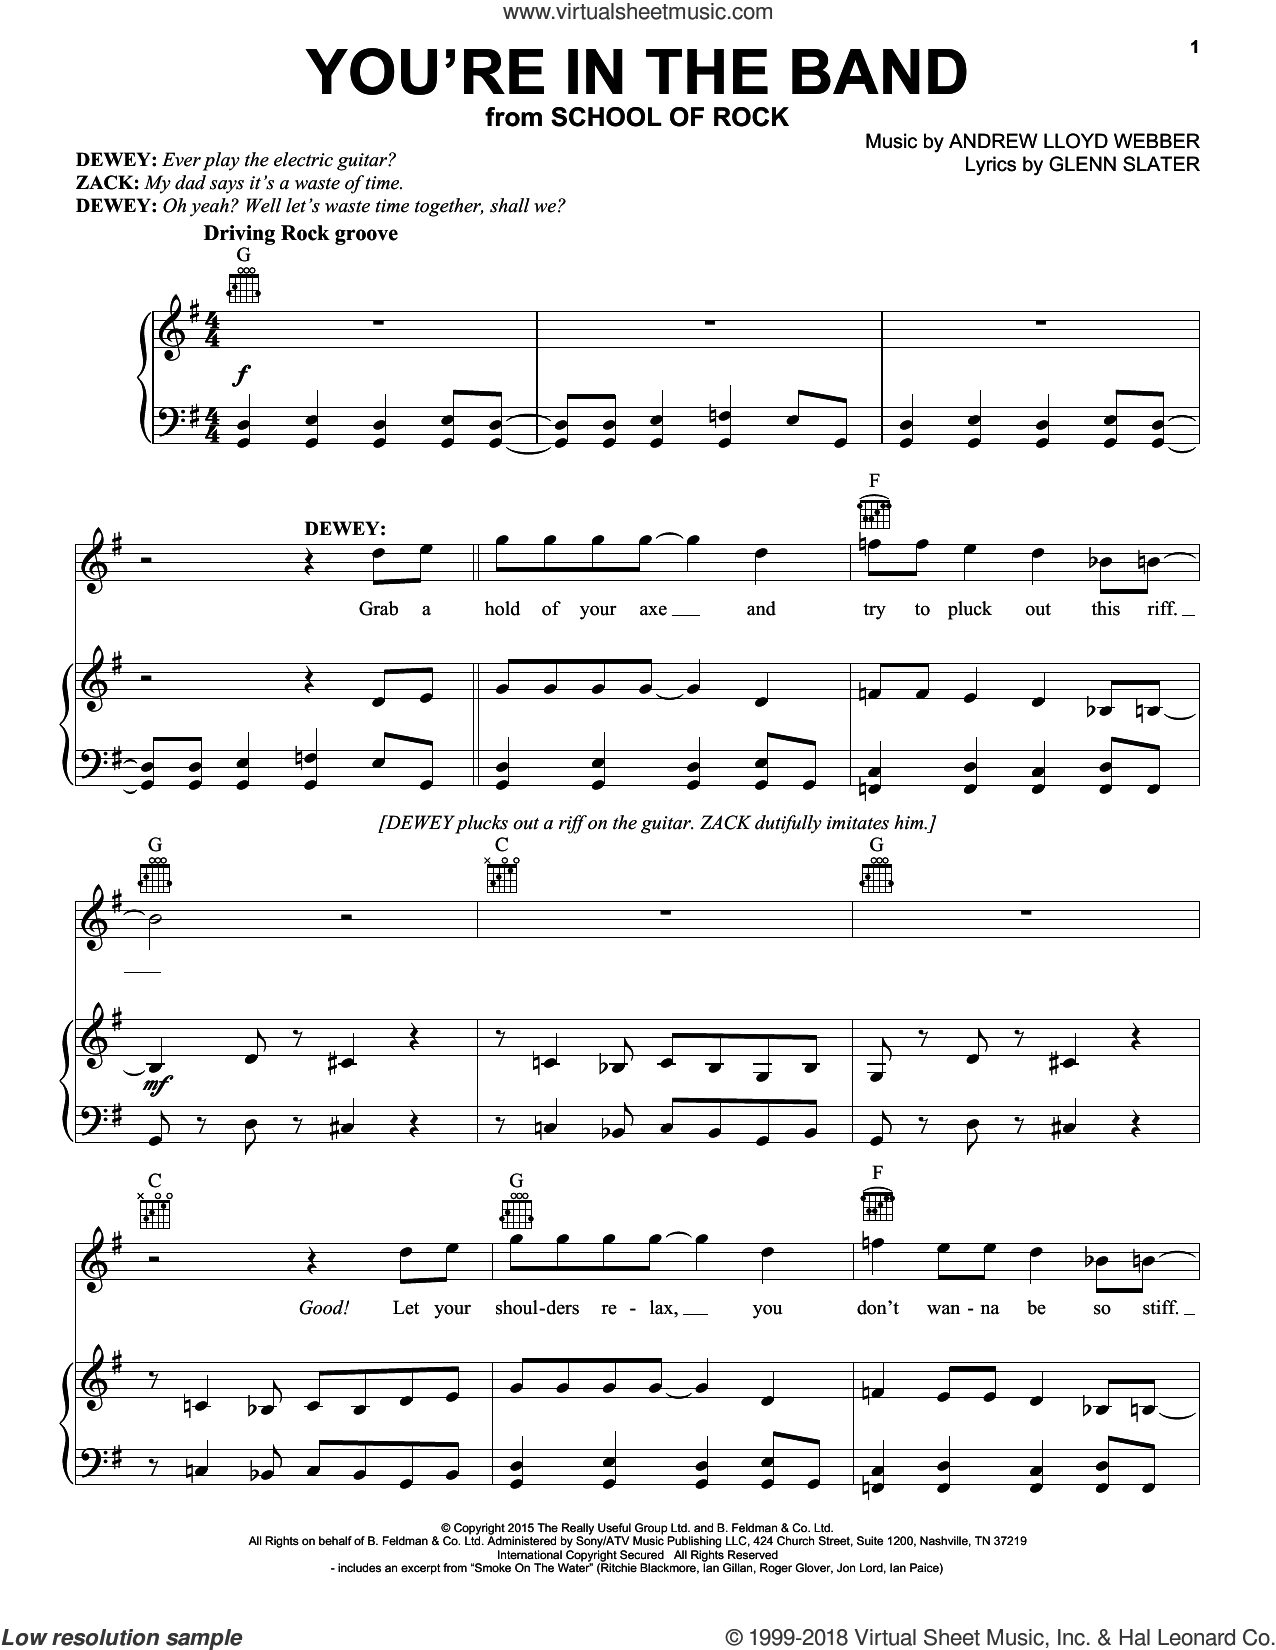 You're In The Band sheet music for voice, piano or guitar by Andrew Lloyd Webber and Glenn Slater, intermediate skill level